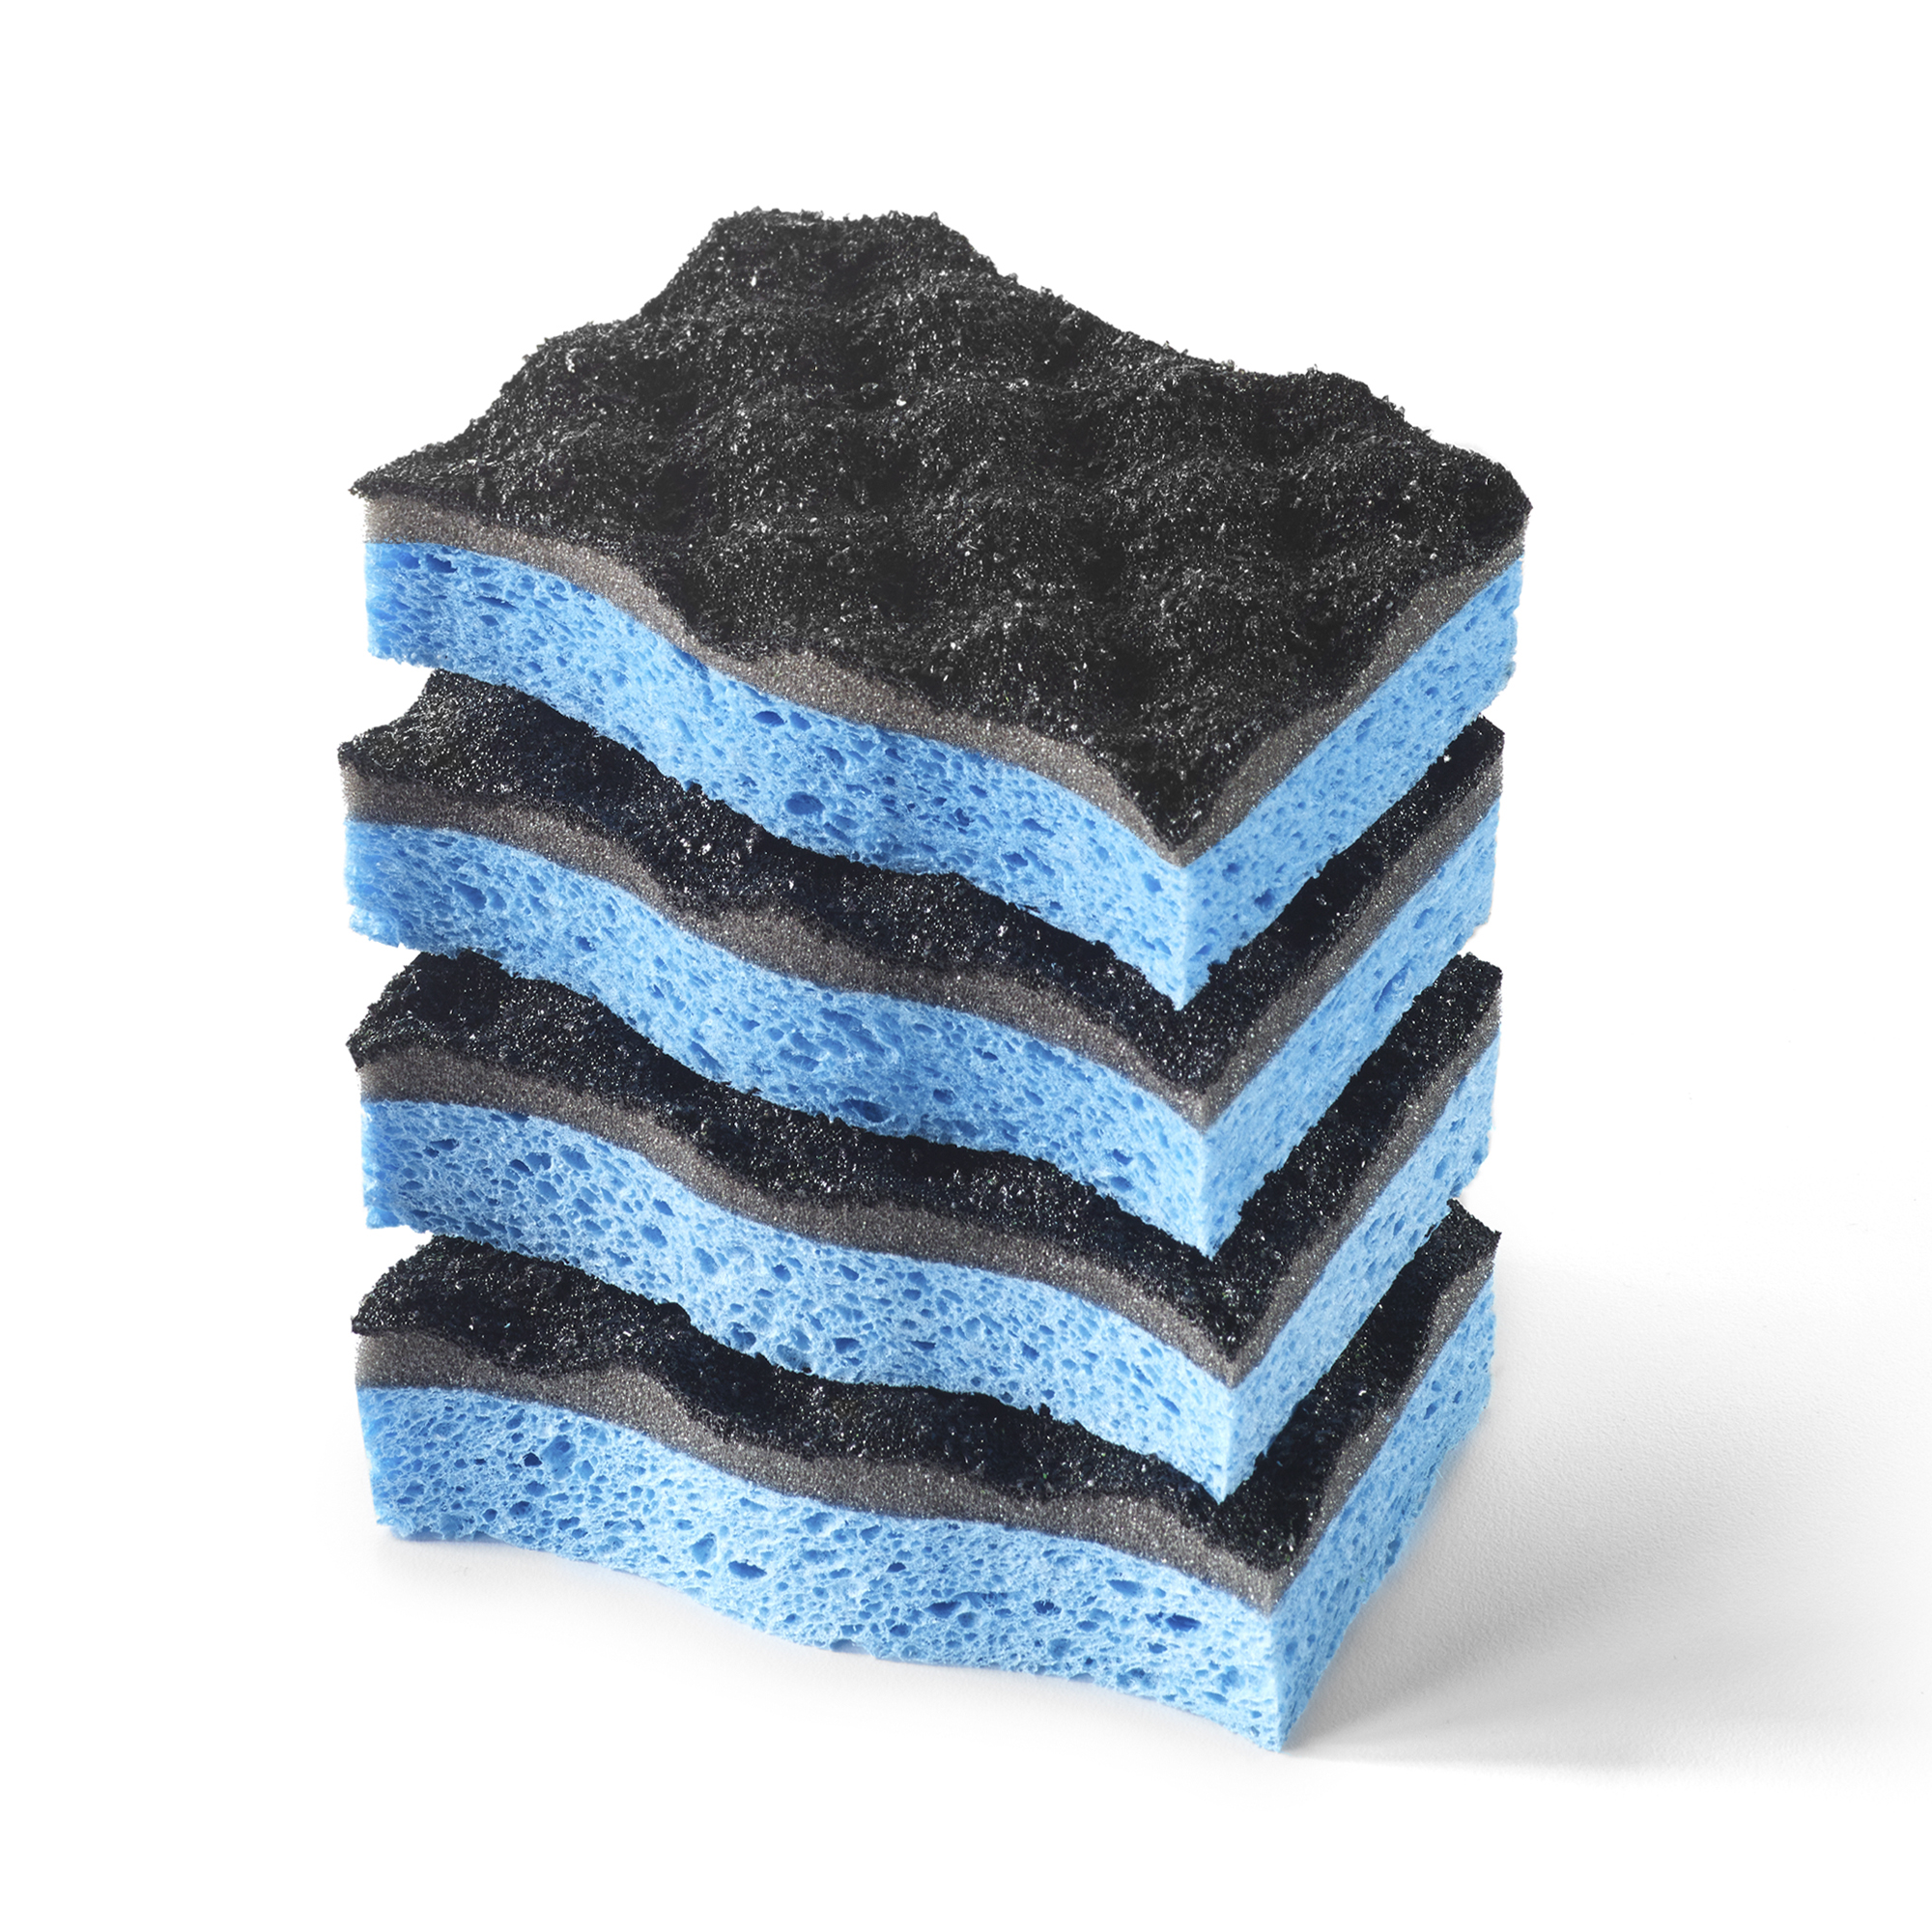 O-Cedar Heavy Duty Scrunge Scrubber Sponge (Pack of 4)